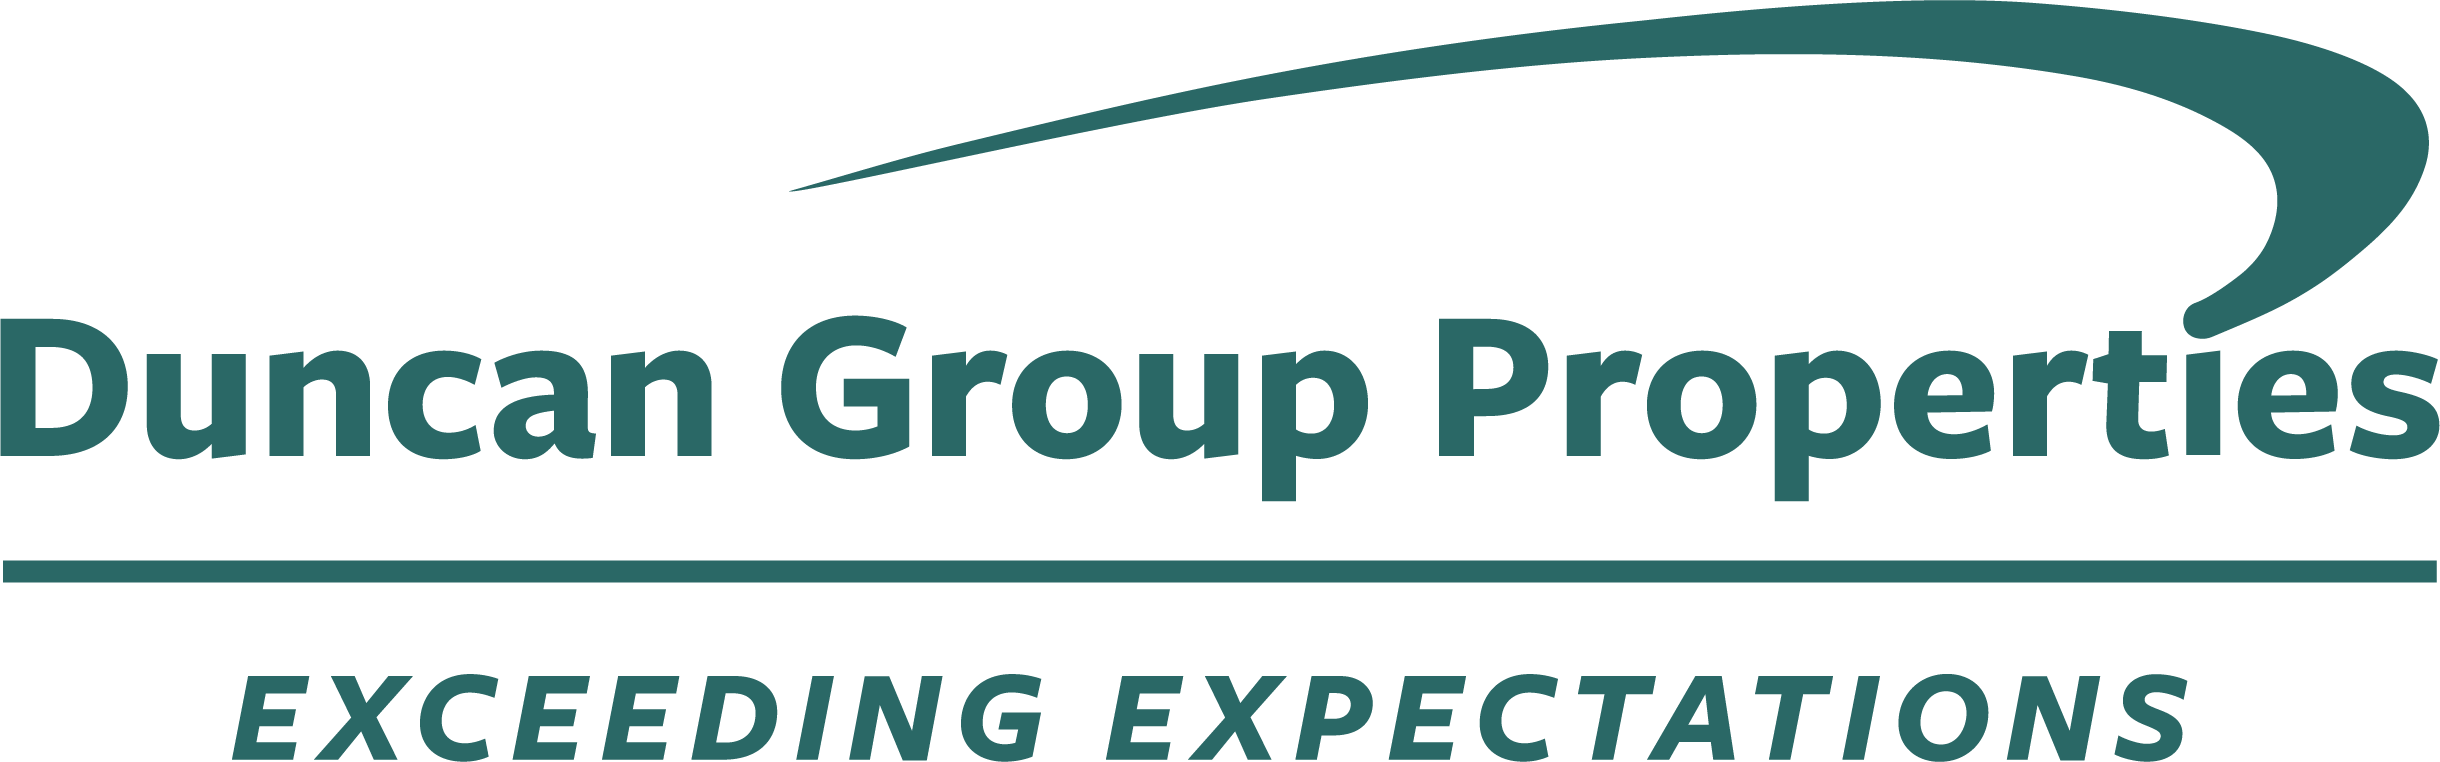 Duncan Group Properties